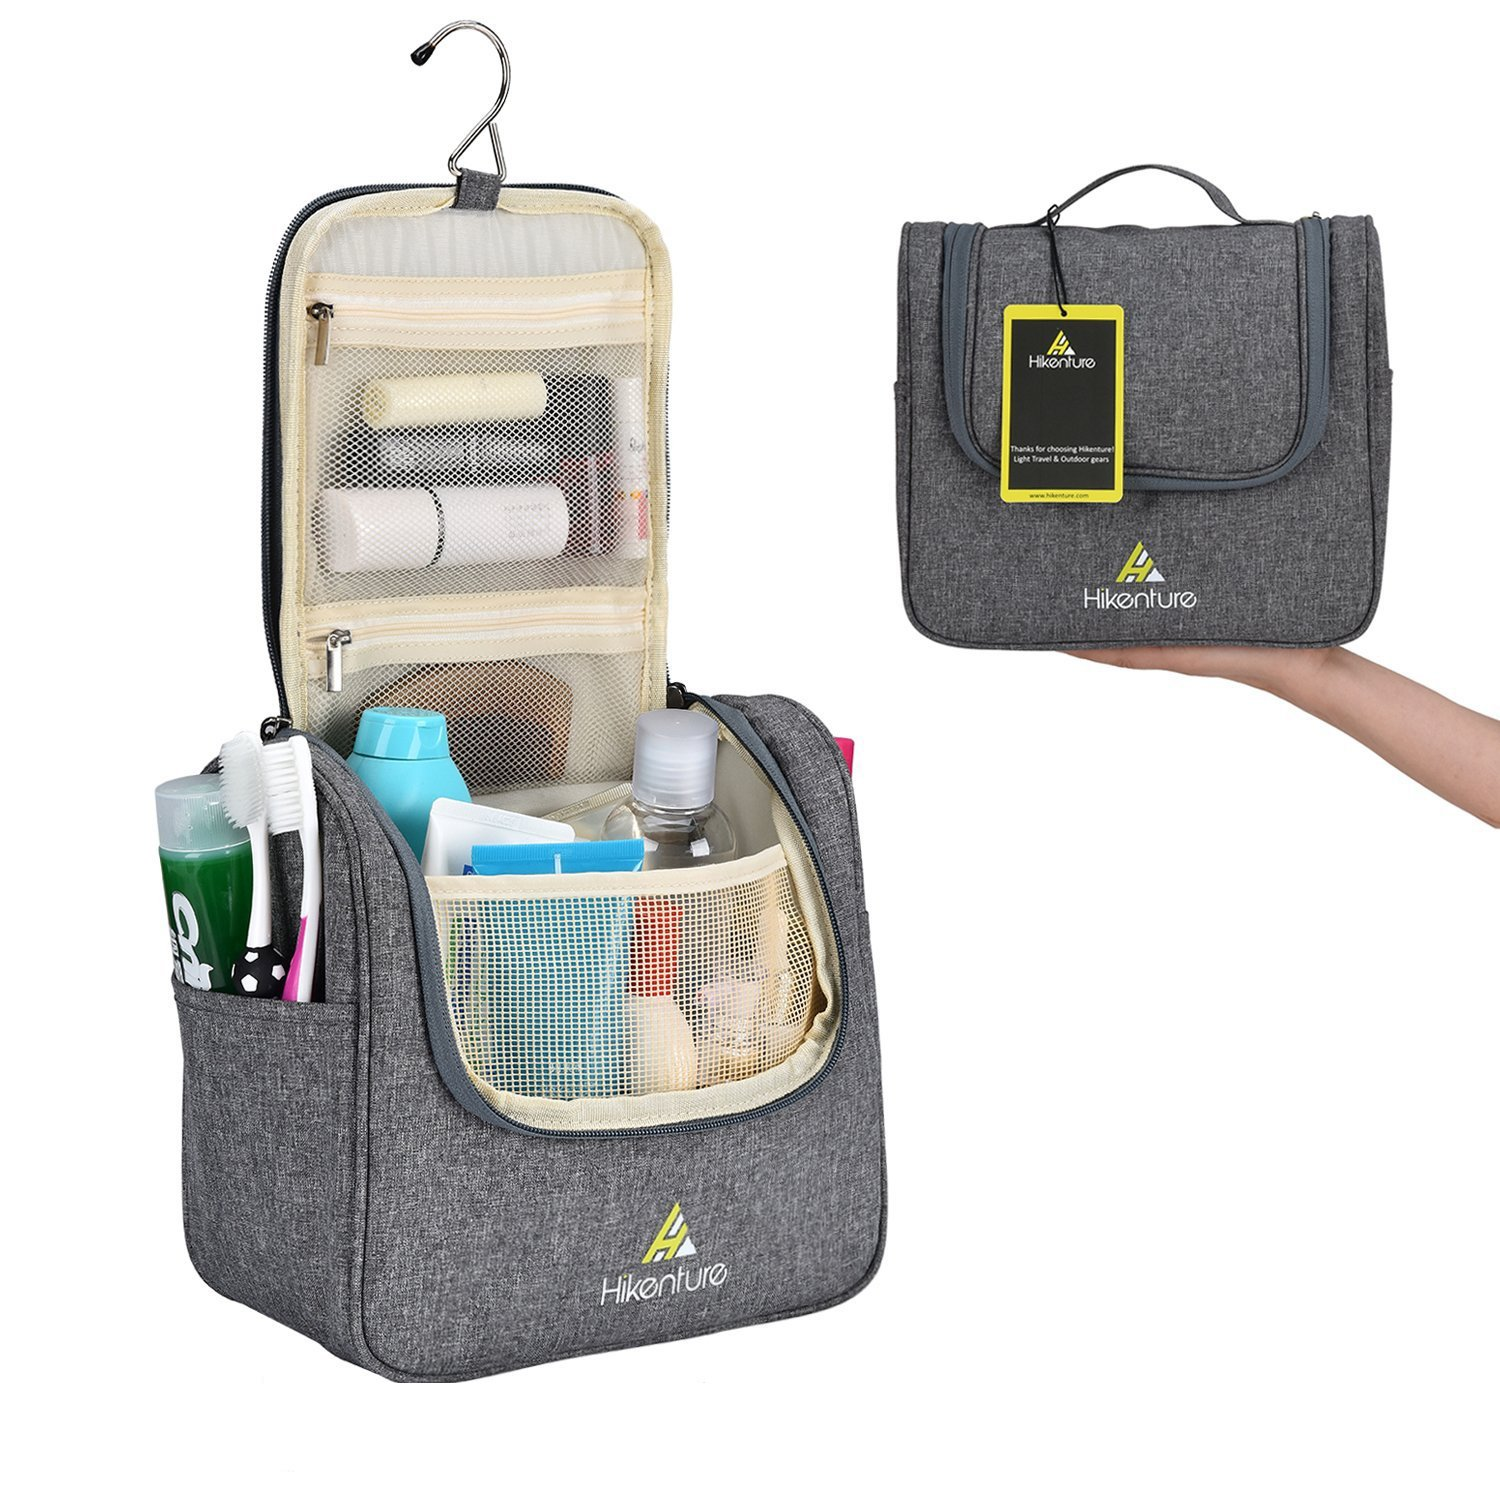 d951769a99ae Amazon.com   Travel Hanging Toiletry Bag by Hikenture